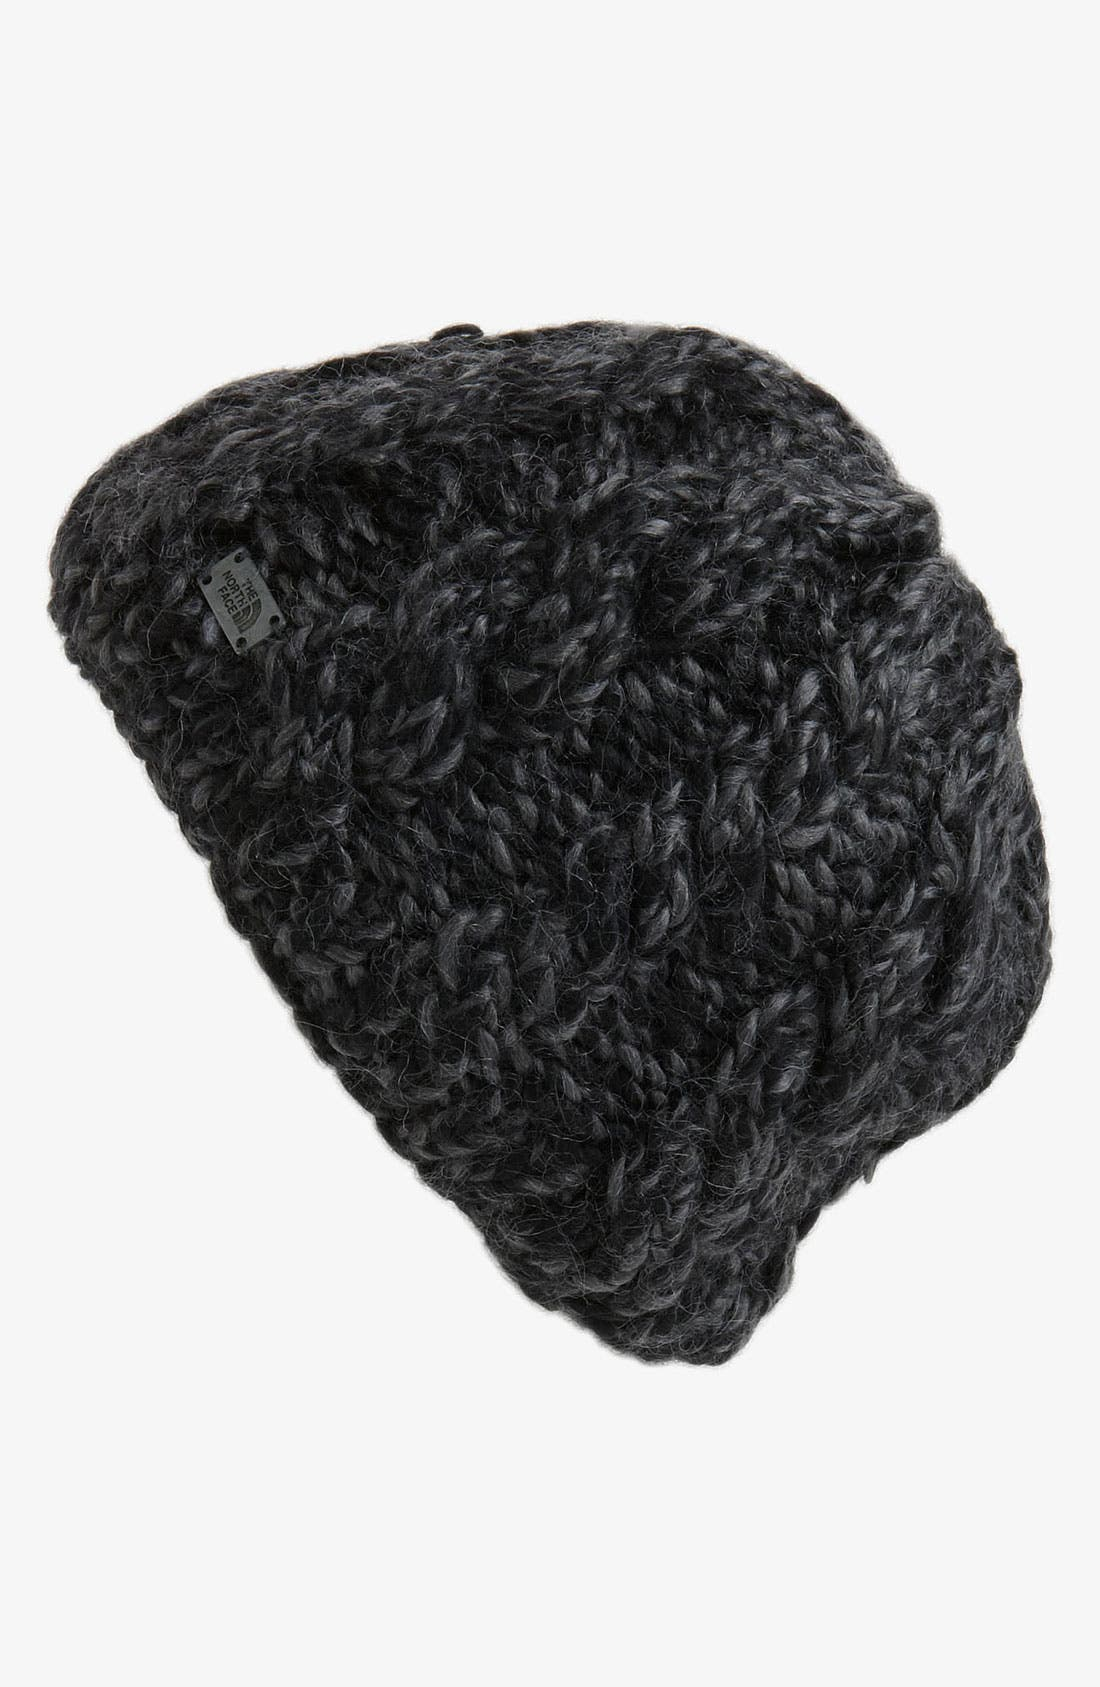 Alternate Image 1 Selected - The North Face Fuzzy Cable Beanie (Women)